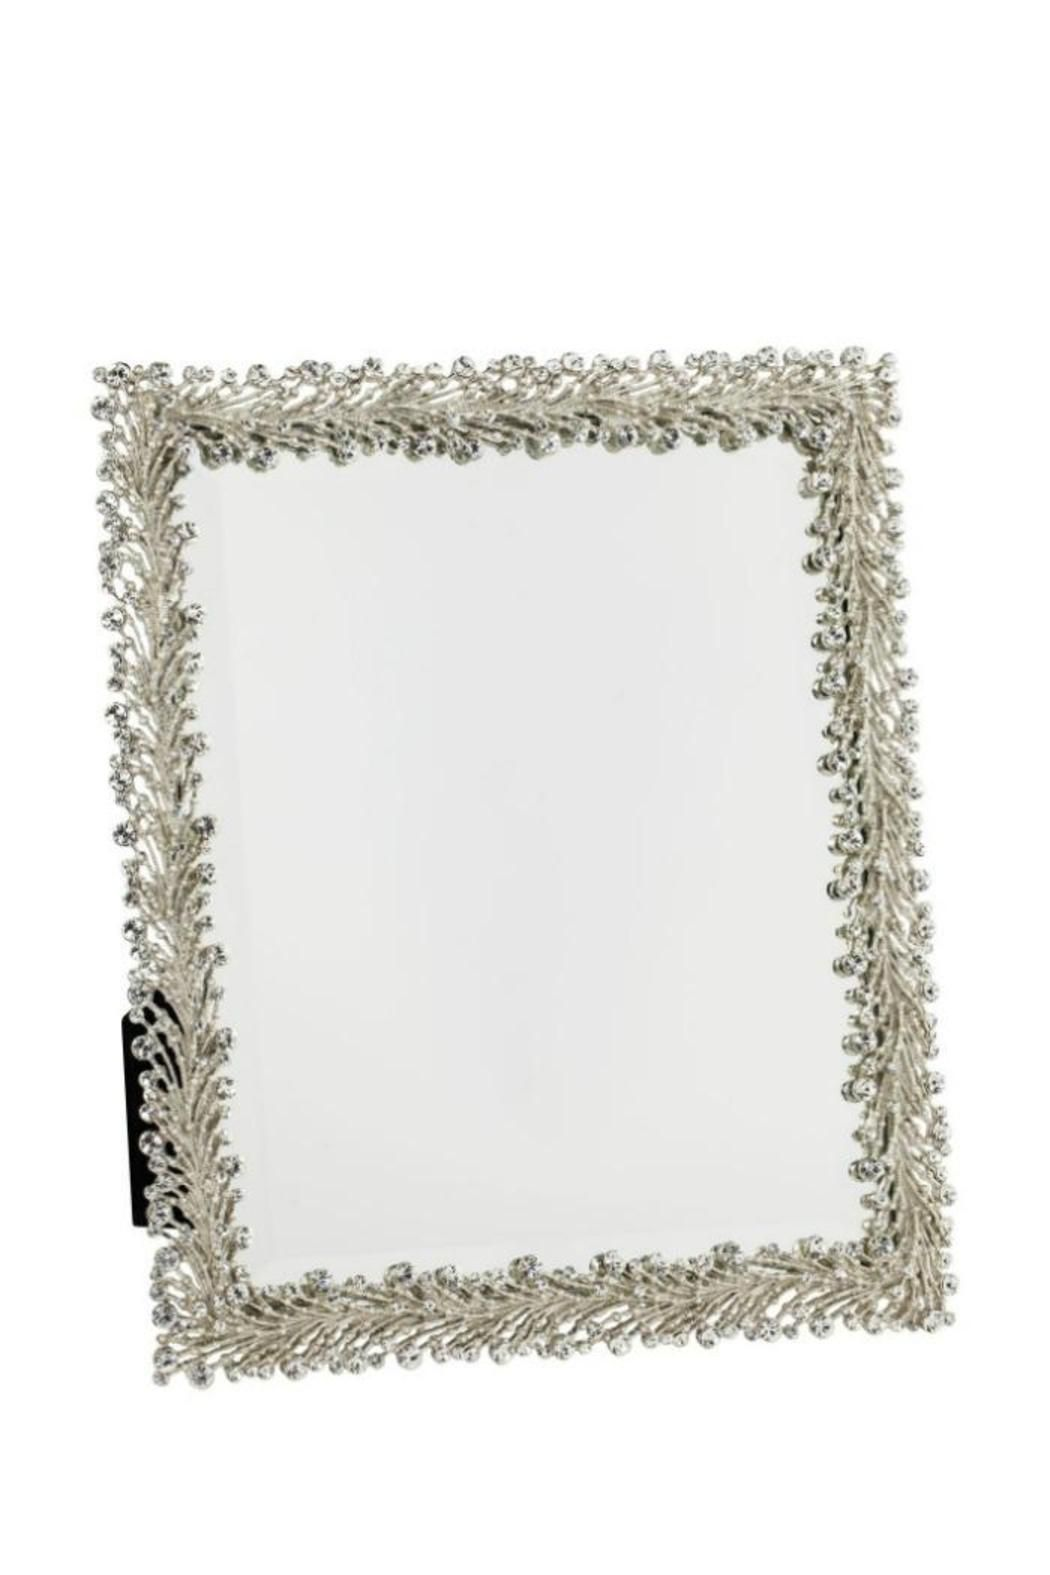 Stunning freestanding mirror finished with silver and Swarovski crystals. This mirror will be the perfect touch of elegance to your vanity!   Twinkles Standing Mirror  by Olivia Riegel. Home & Gifts - Gifts & Things River North, Chicago, Illinois